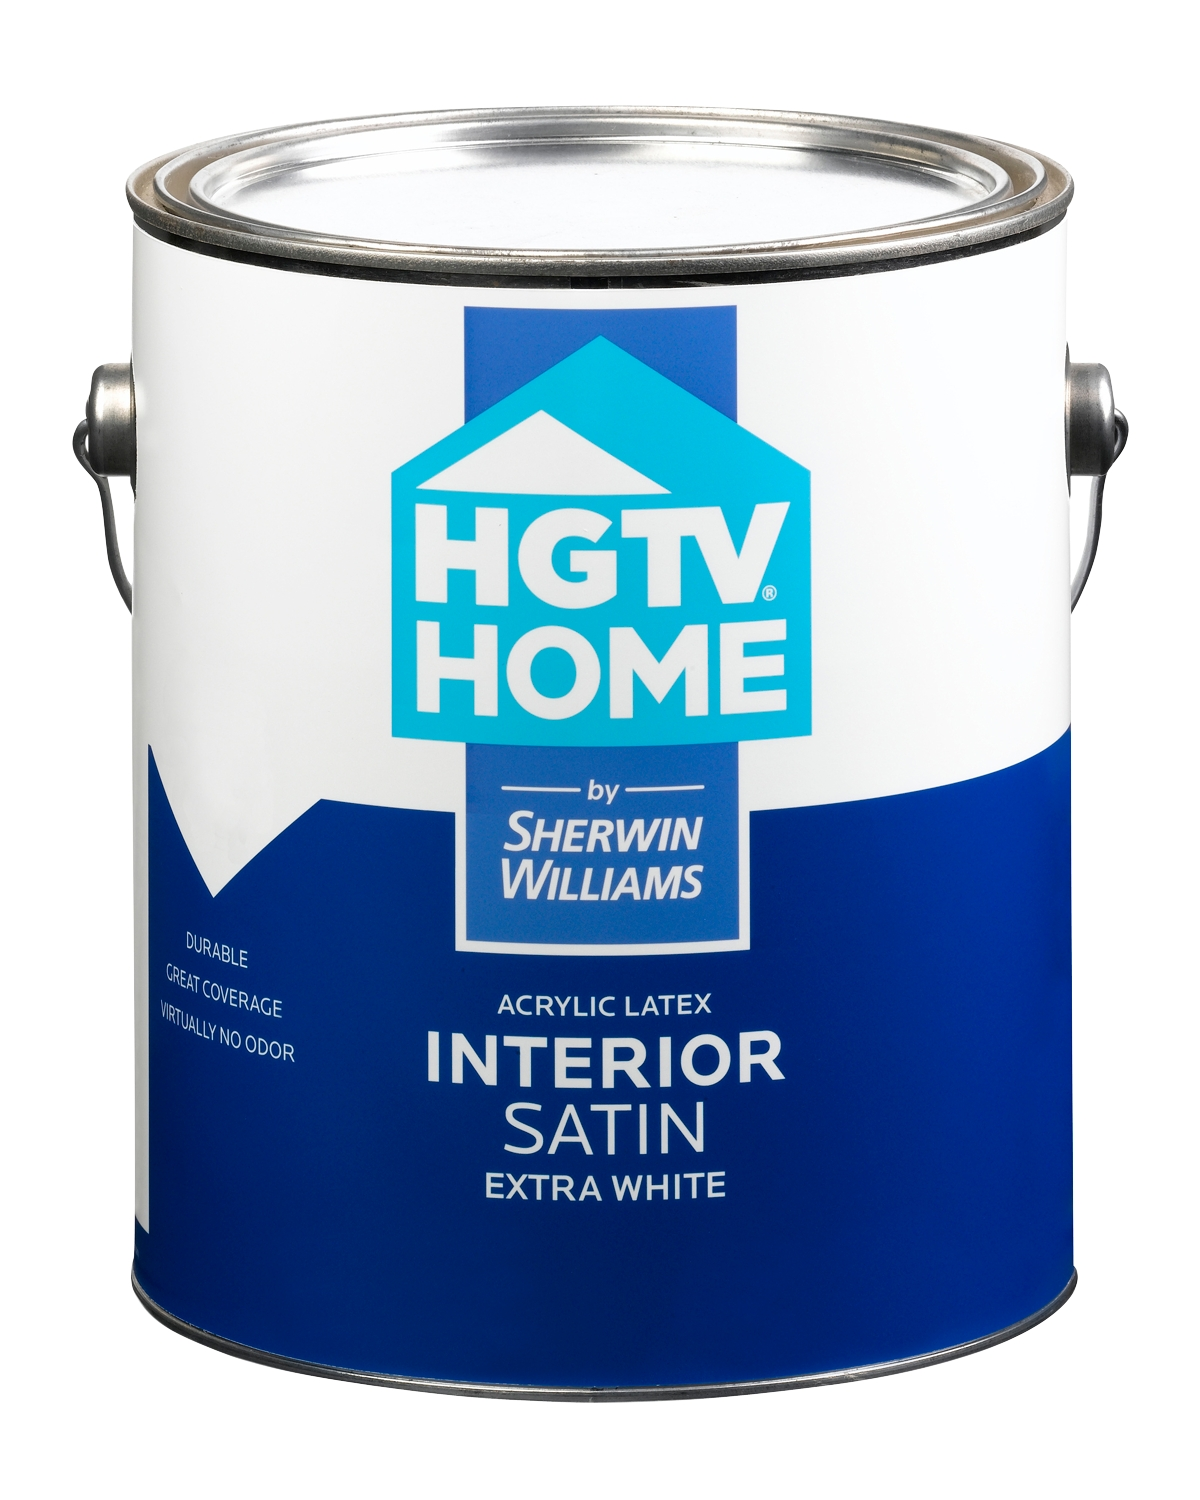 HGTV® HOME by Sherwin-Williams Interior Paint